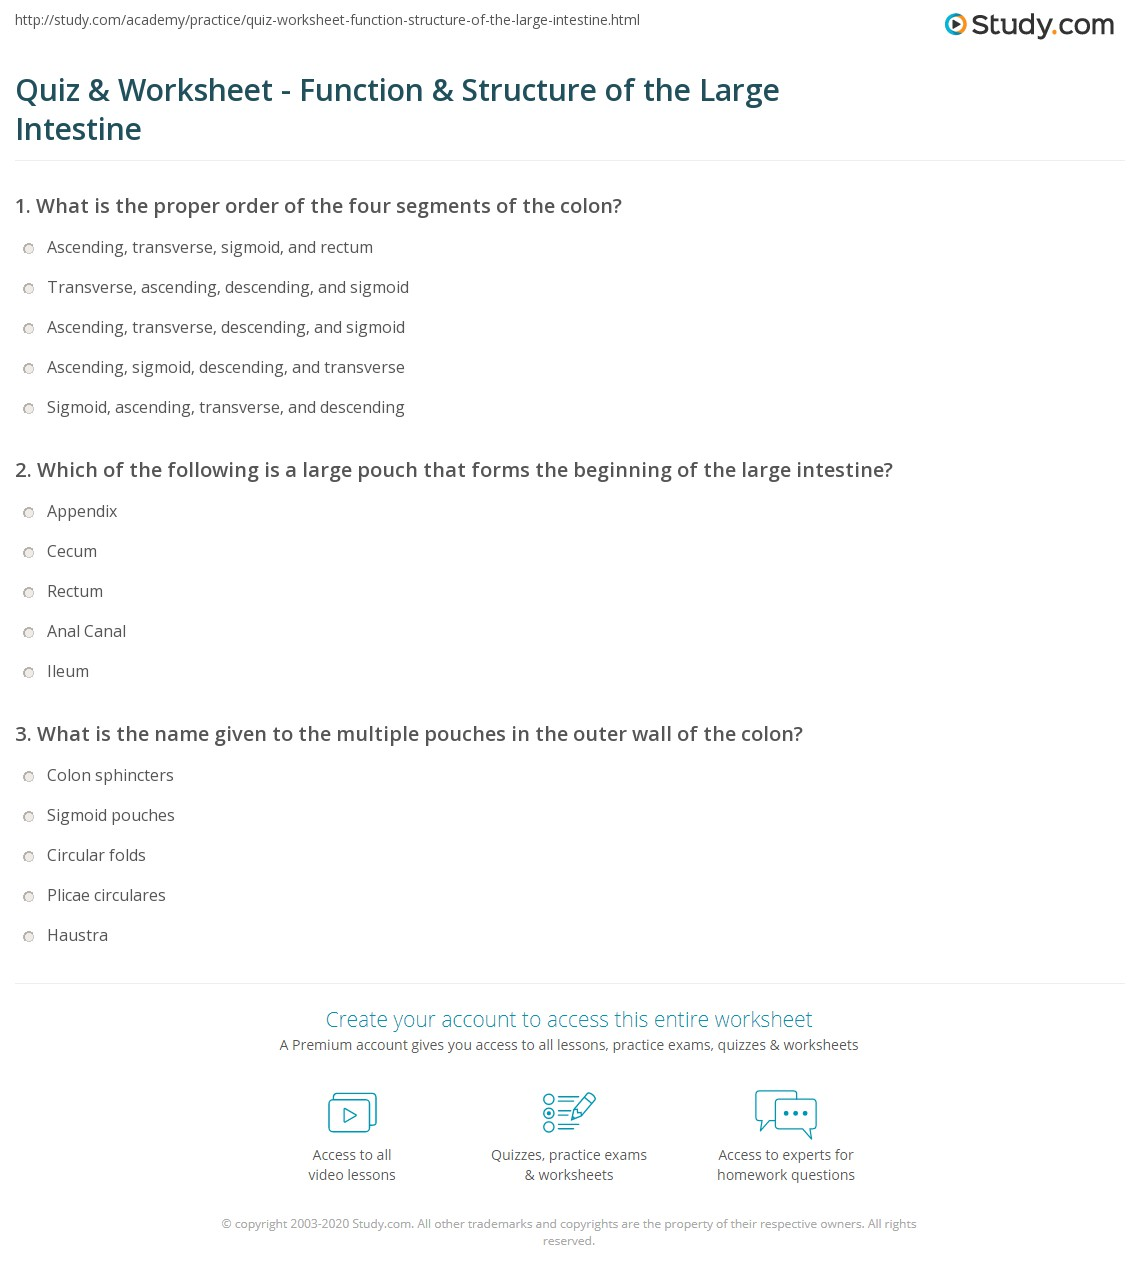 Quiz Worksheet Function Structure Of The Large Intestine